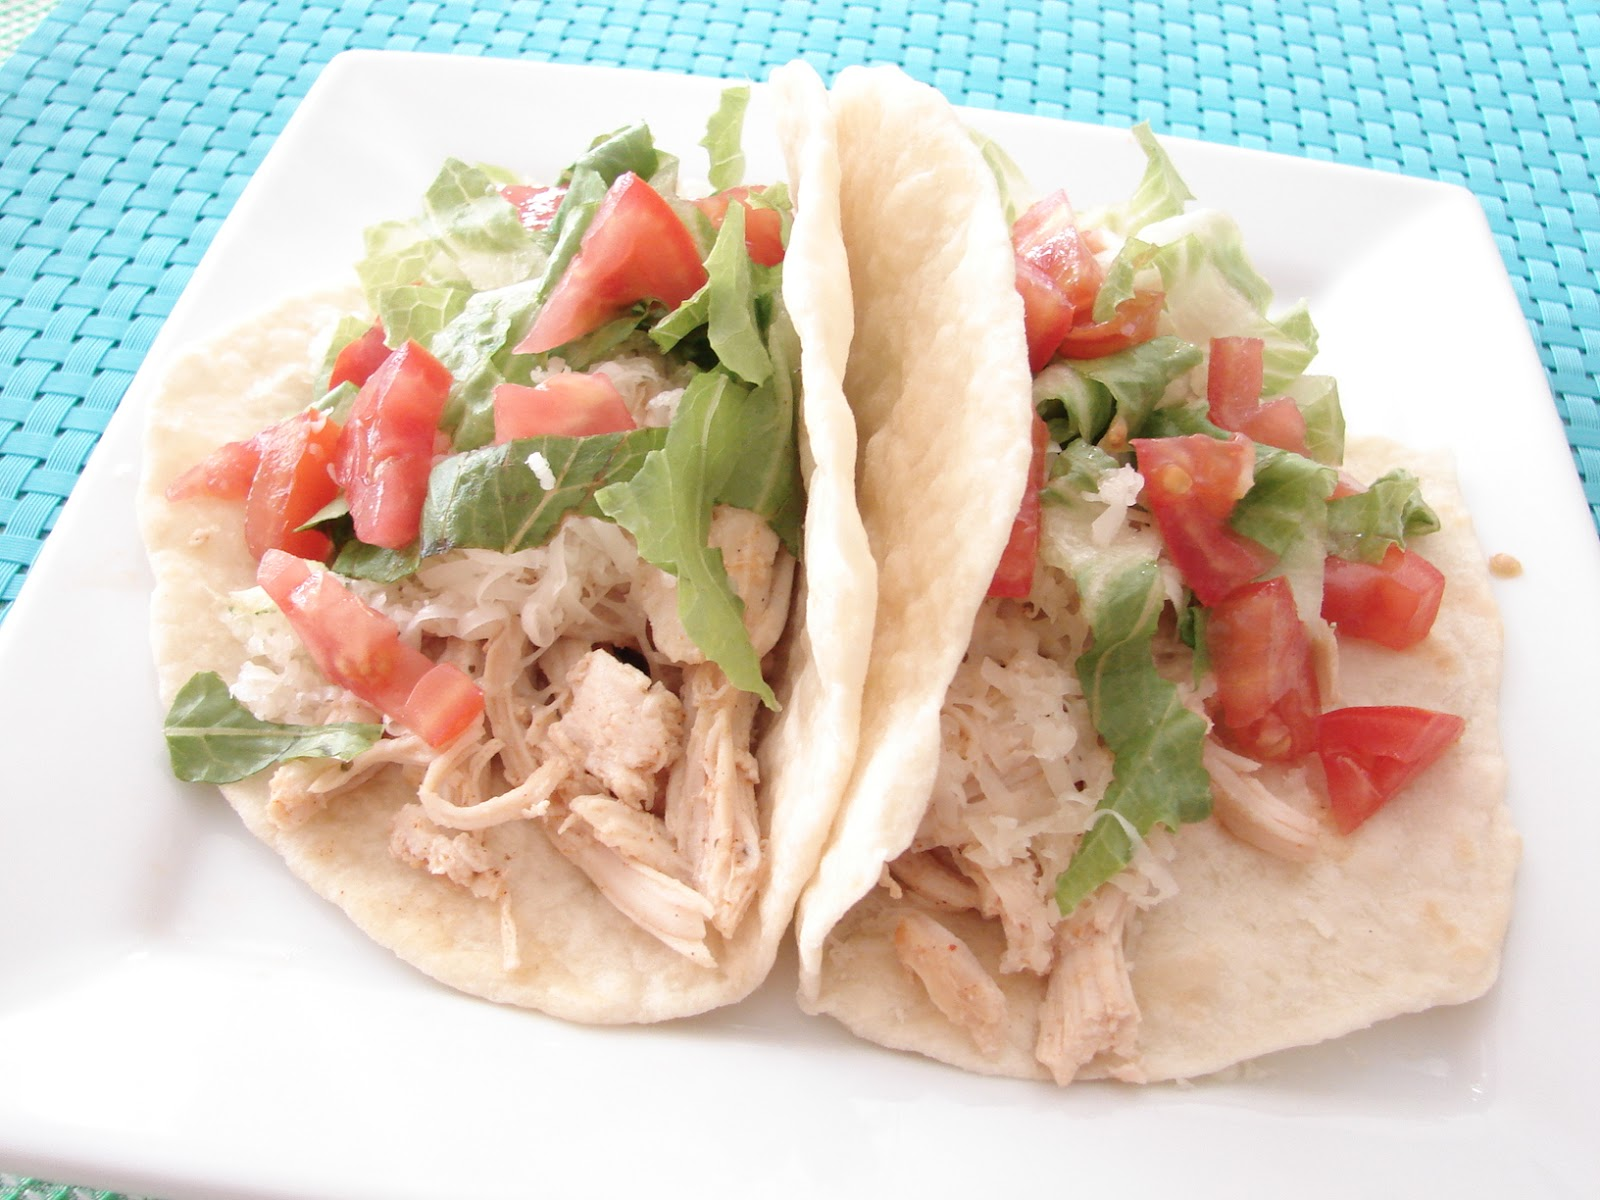 The Royal Cook: Slow Cooker Chicken Taco Filling